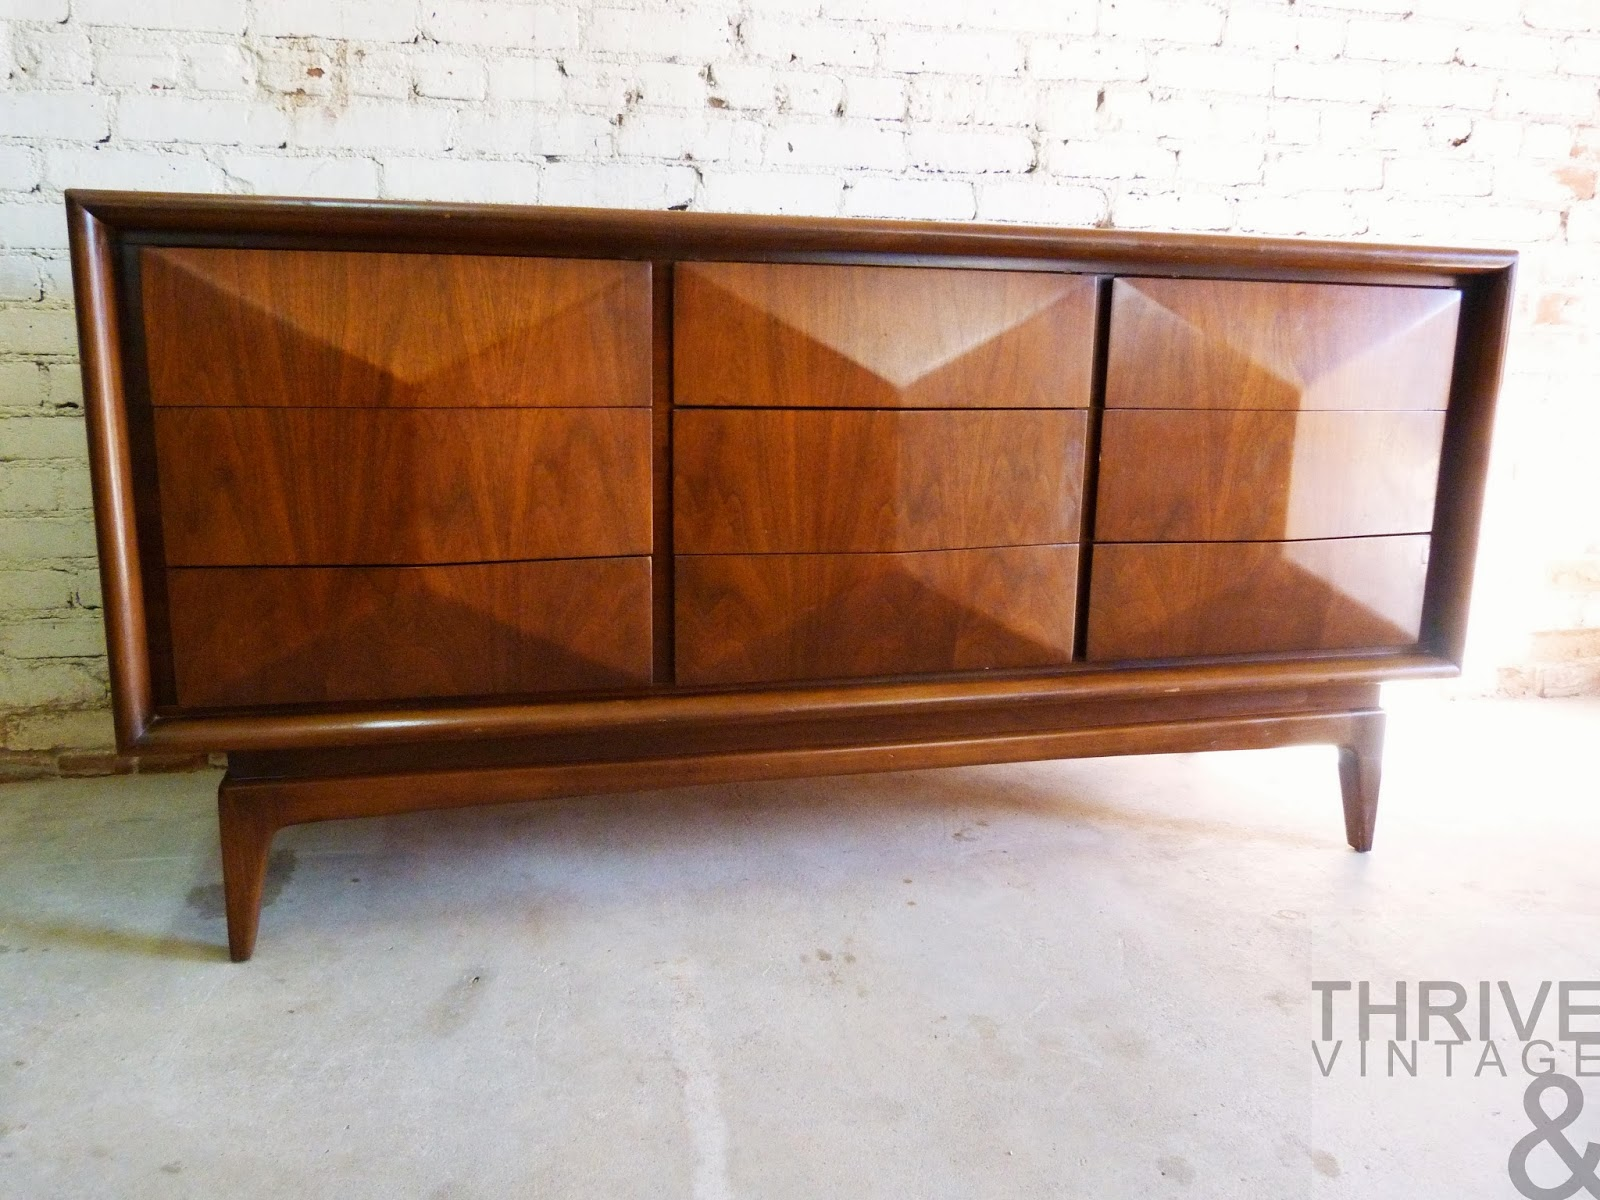 Modern mid century danish vintage furniture shop used for Two in one furniture